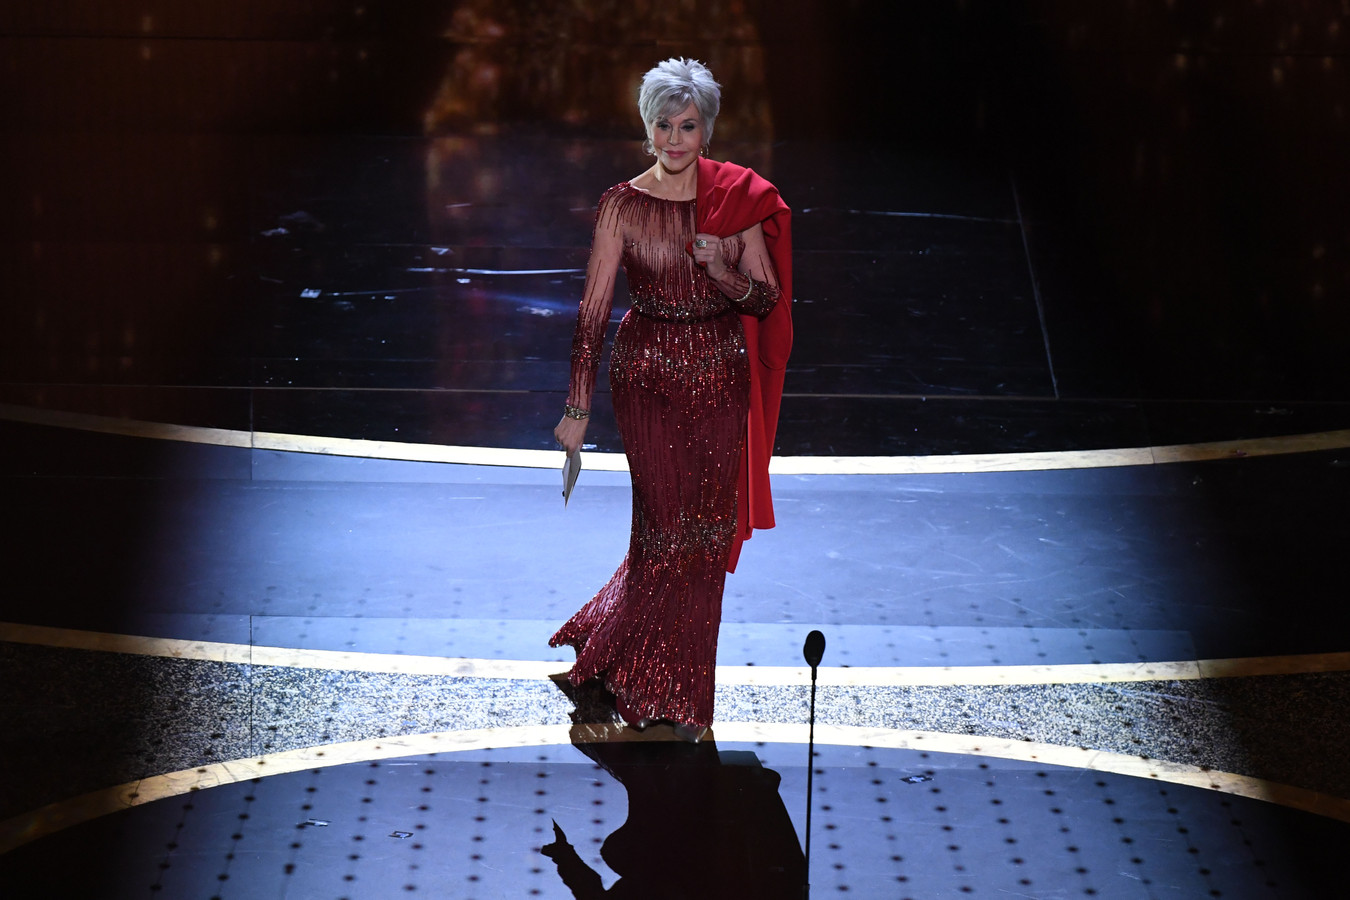 US actress Jane Fonda walks onstage to present the award for Best Picture during the 92nd Oscars at the Dolby Theatre in Hollywood, California on February 9, 2020. (Photo by Mark RALSTON / AFP)